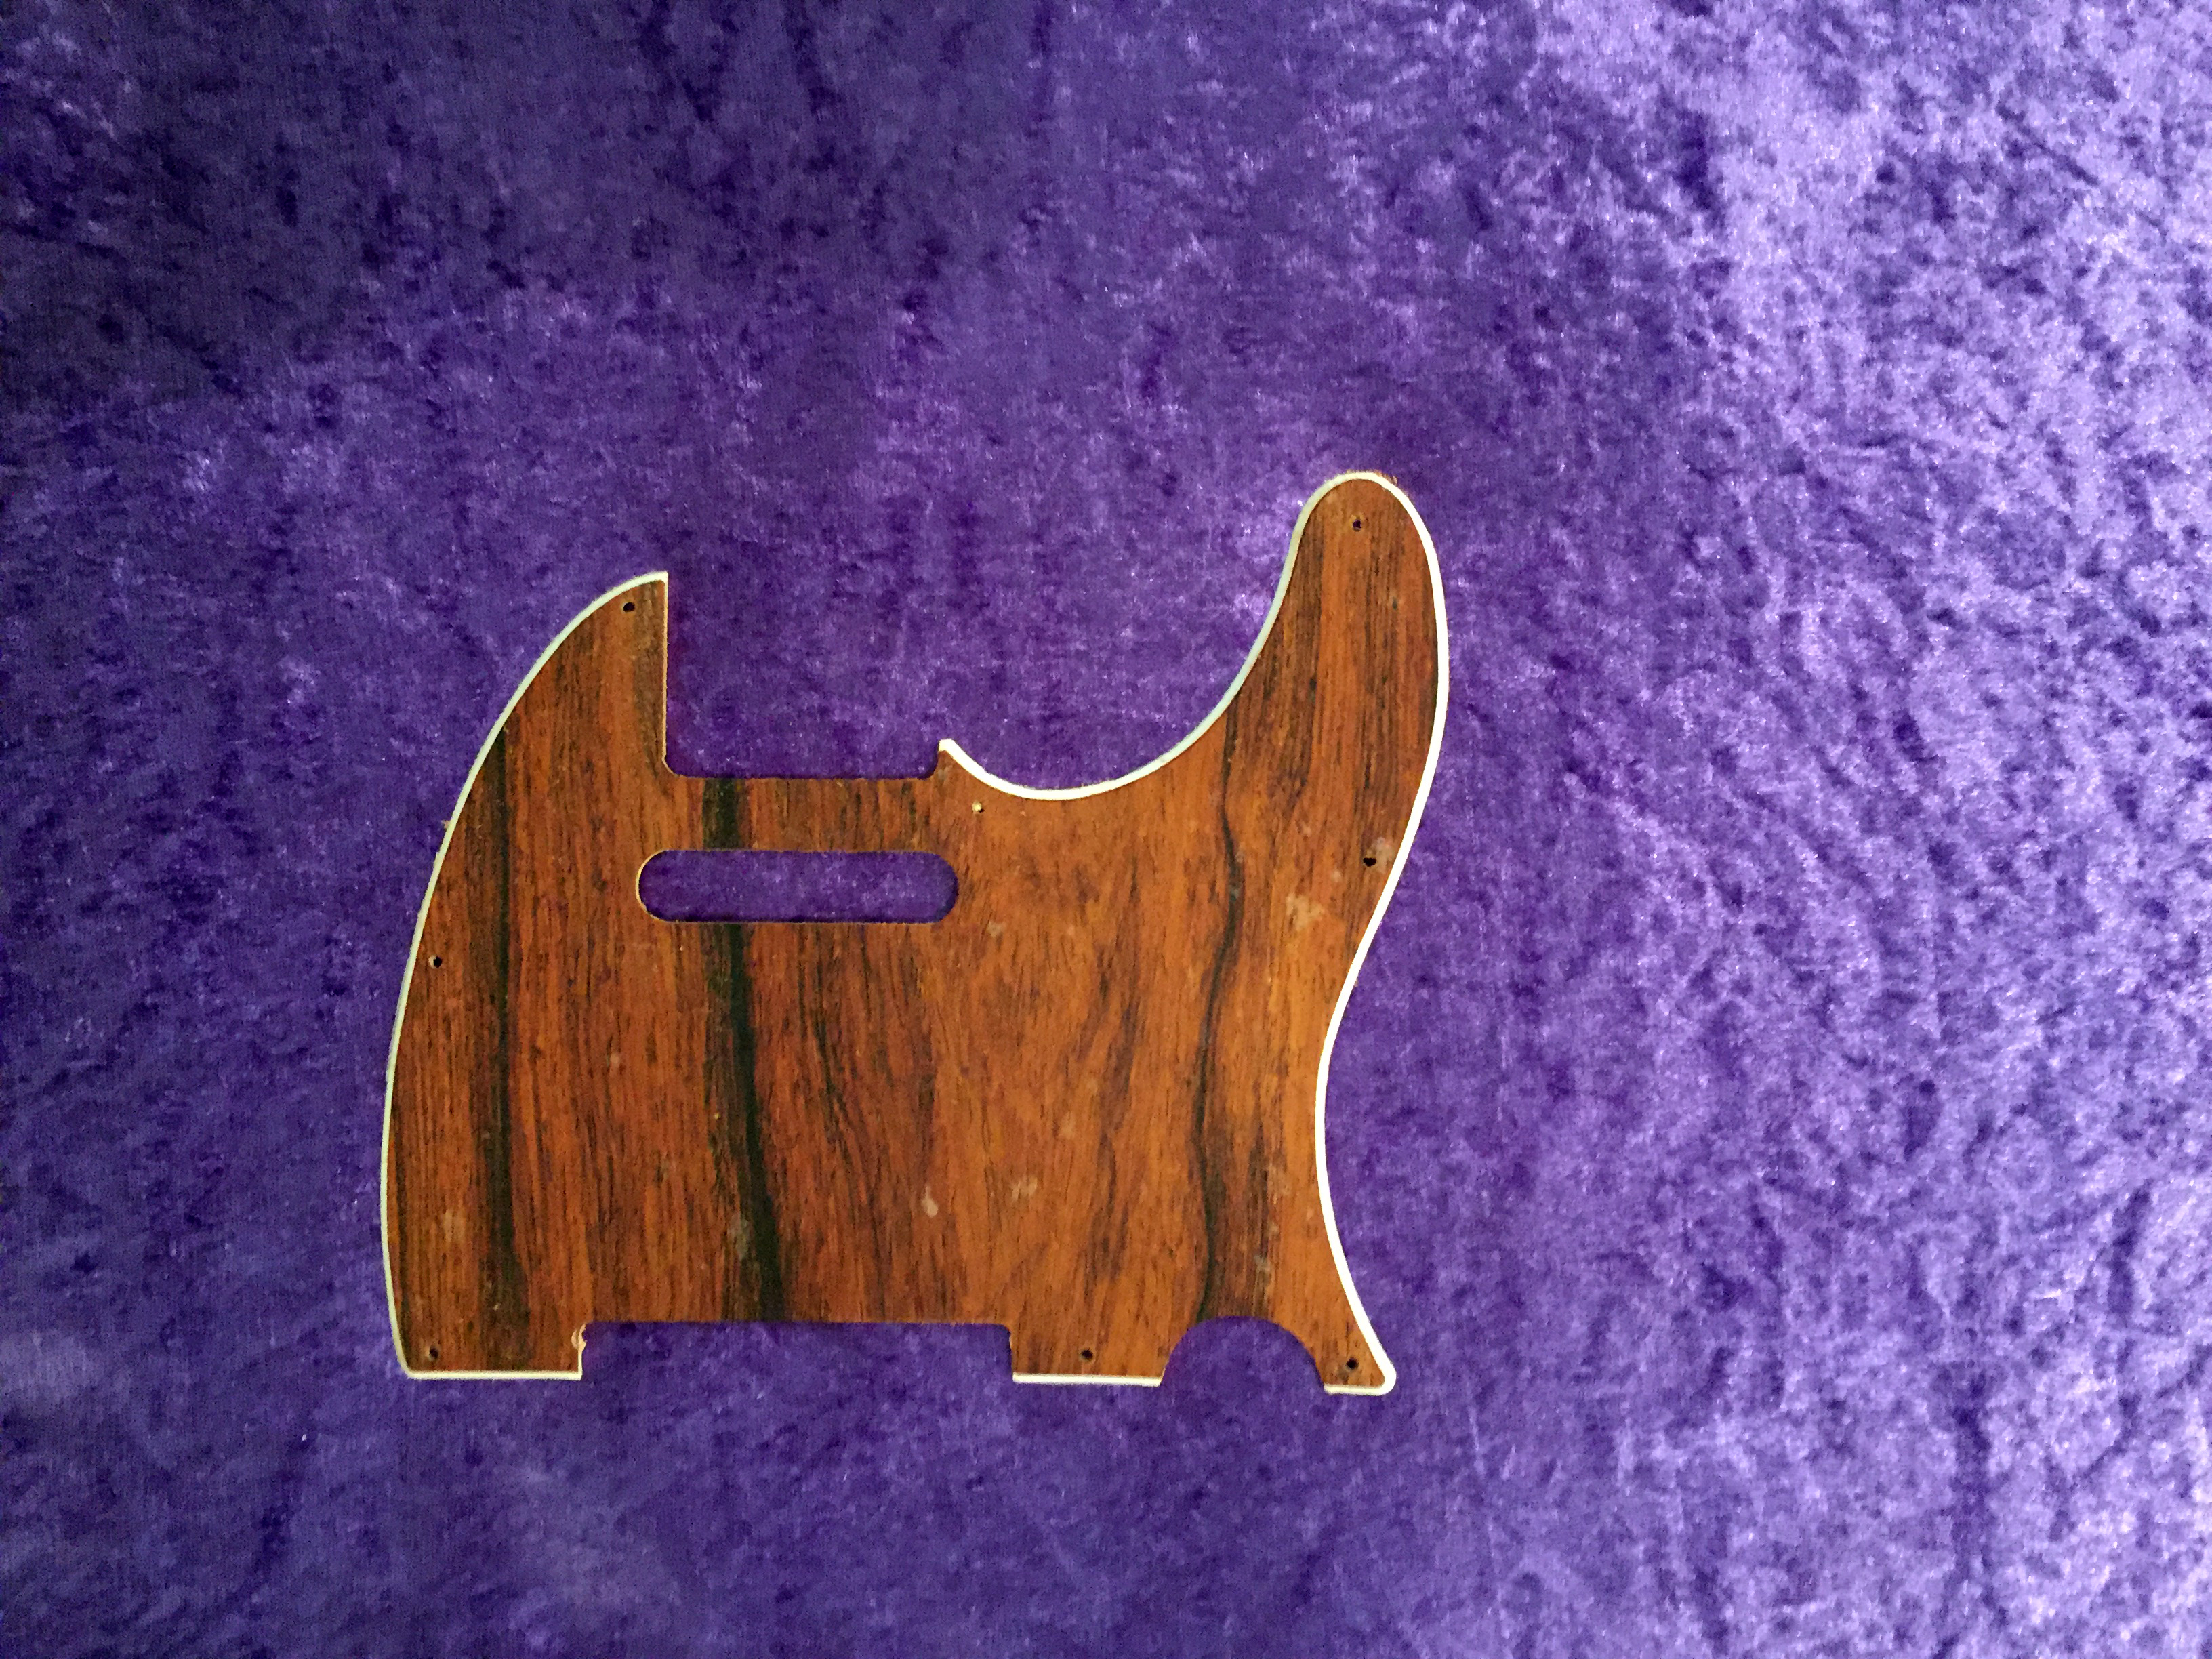 fender all parts wood apw guitars telecaster pickguard